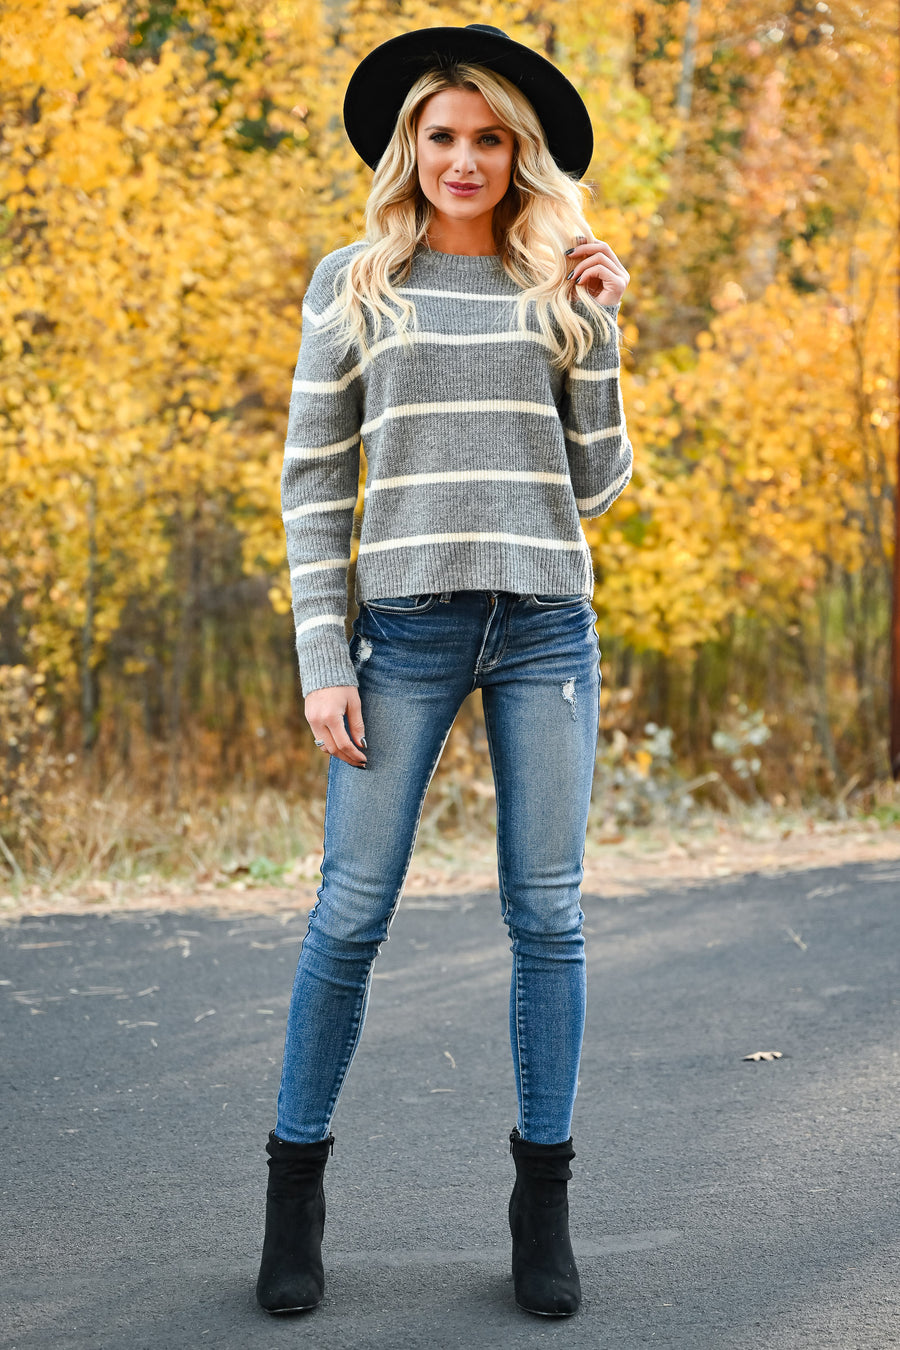 New Heights Cropped Stripe Sweater - Heather Grey womens casual striped knit pullover long sleeve sweater closet candy front